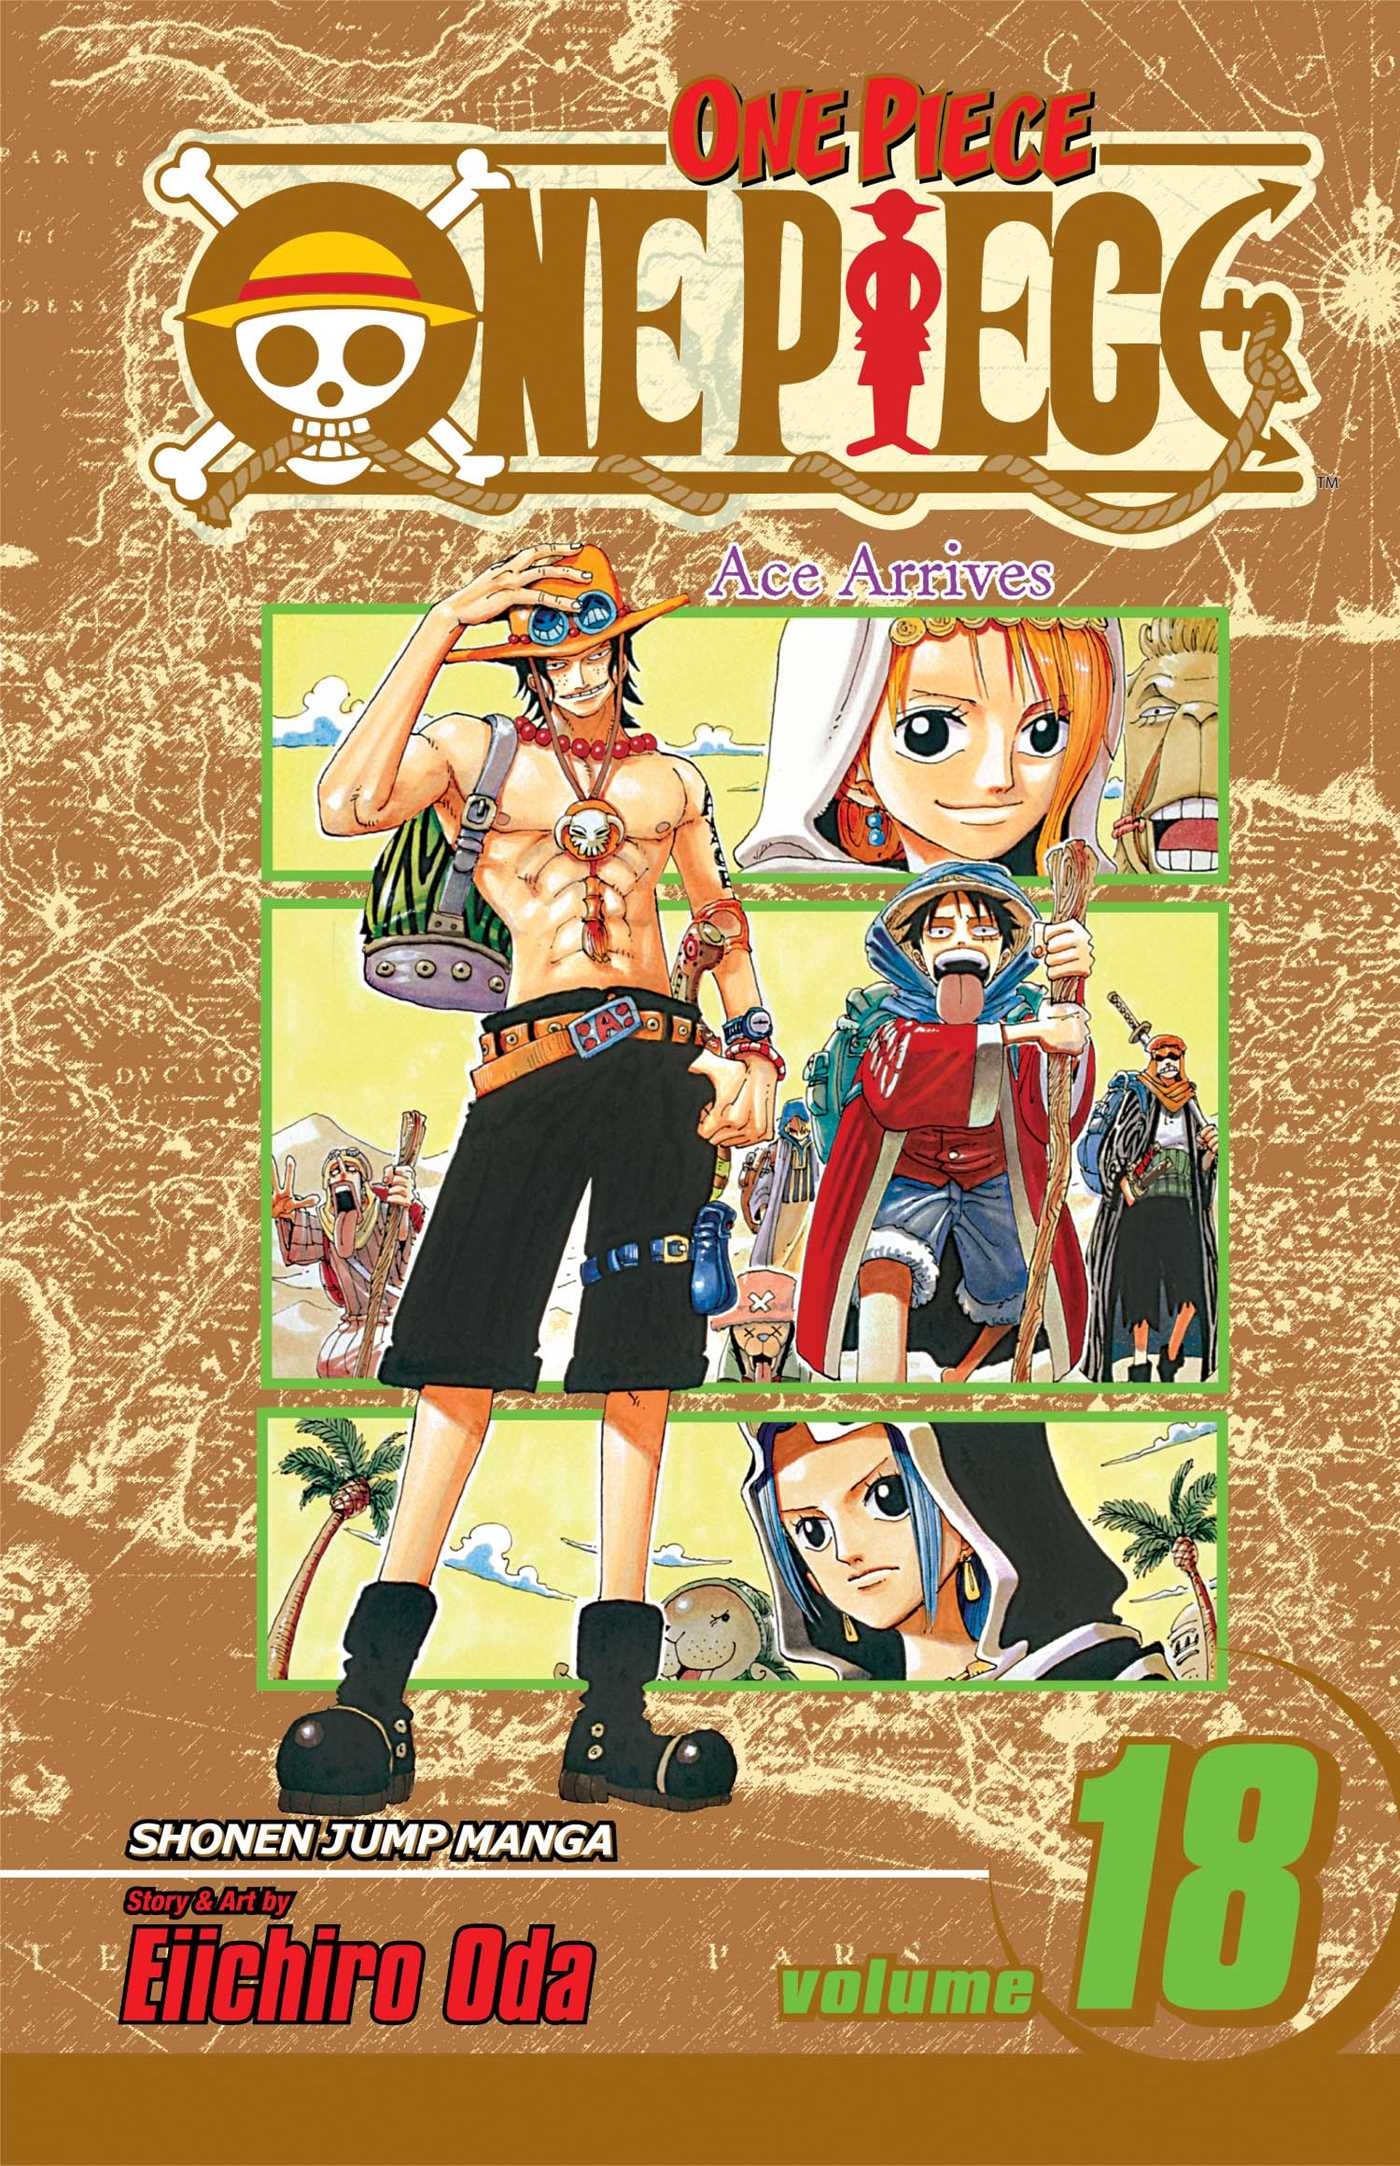 One piece vol 18 9781421515120 hr